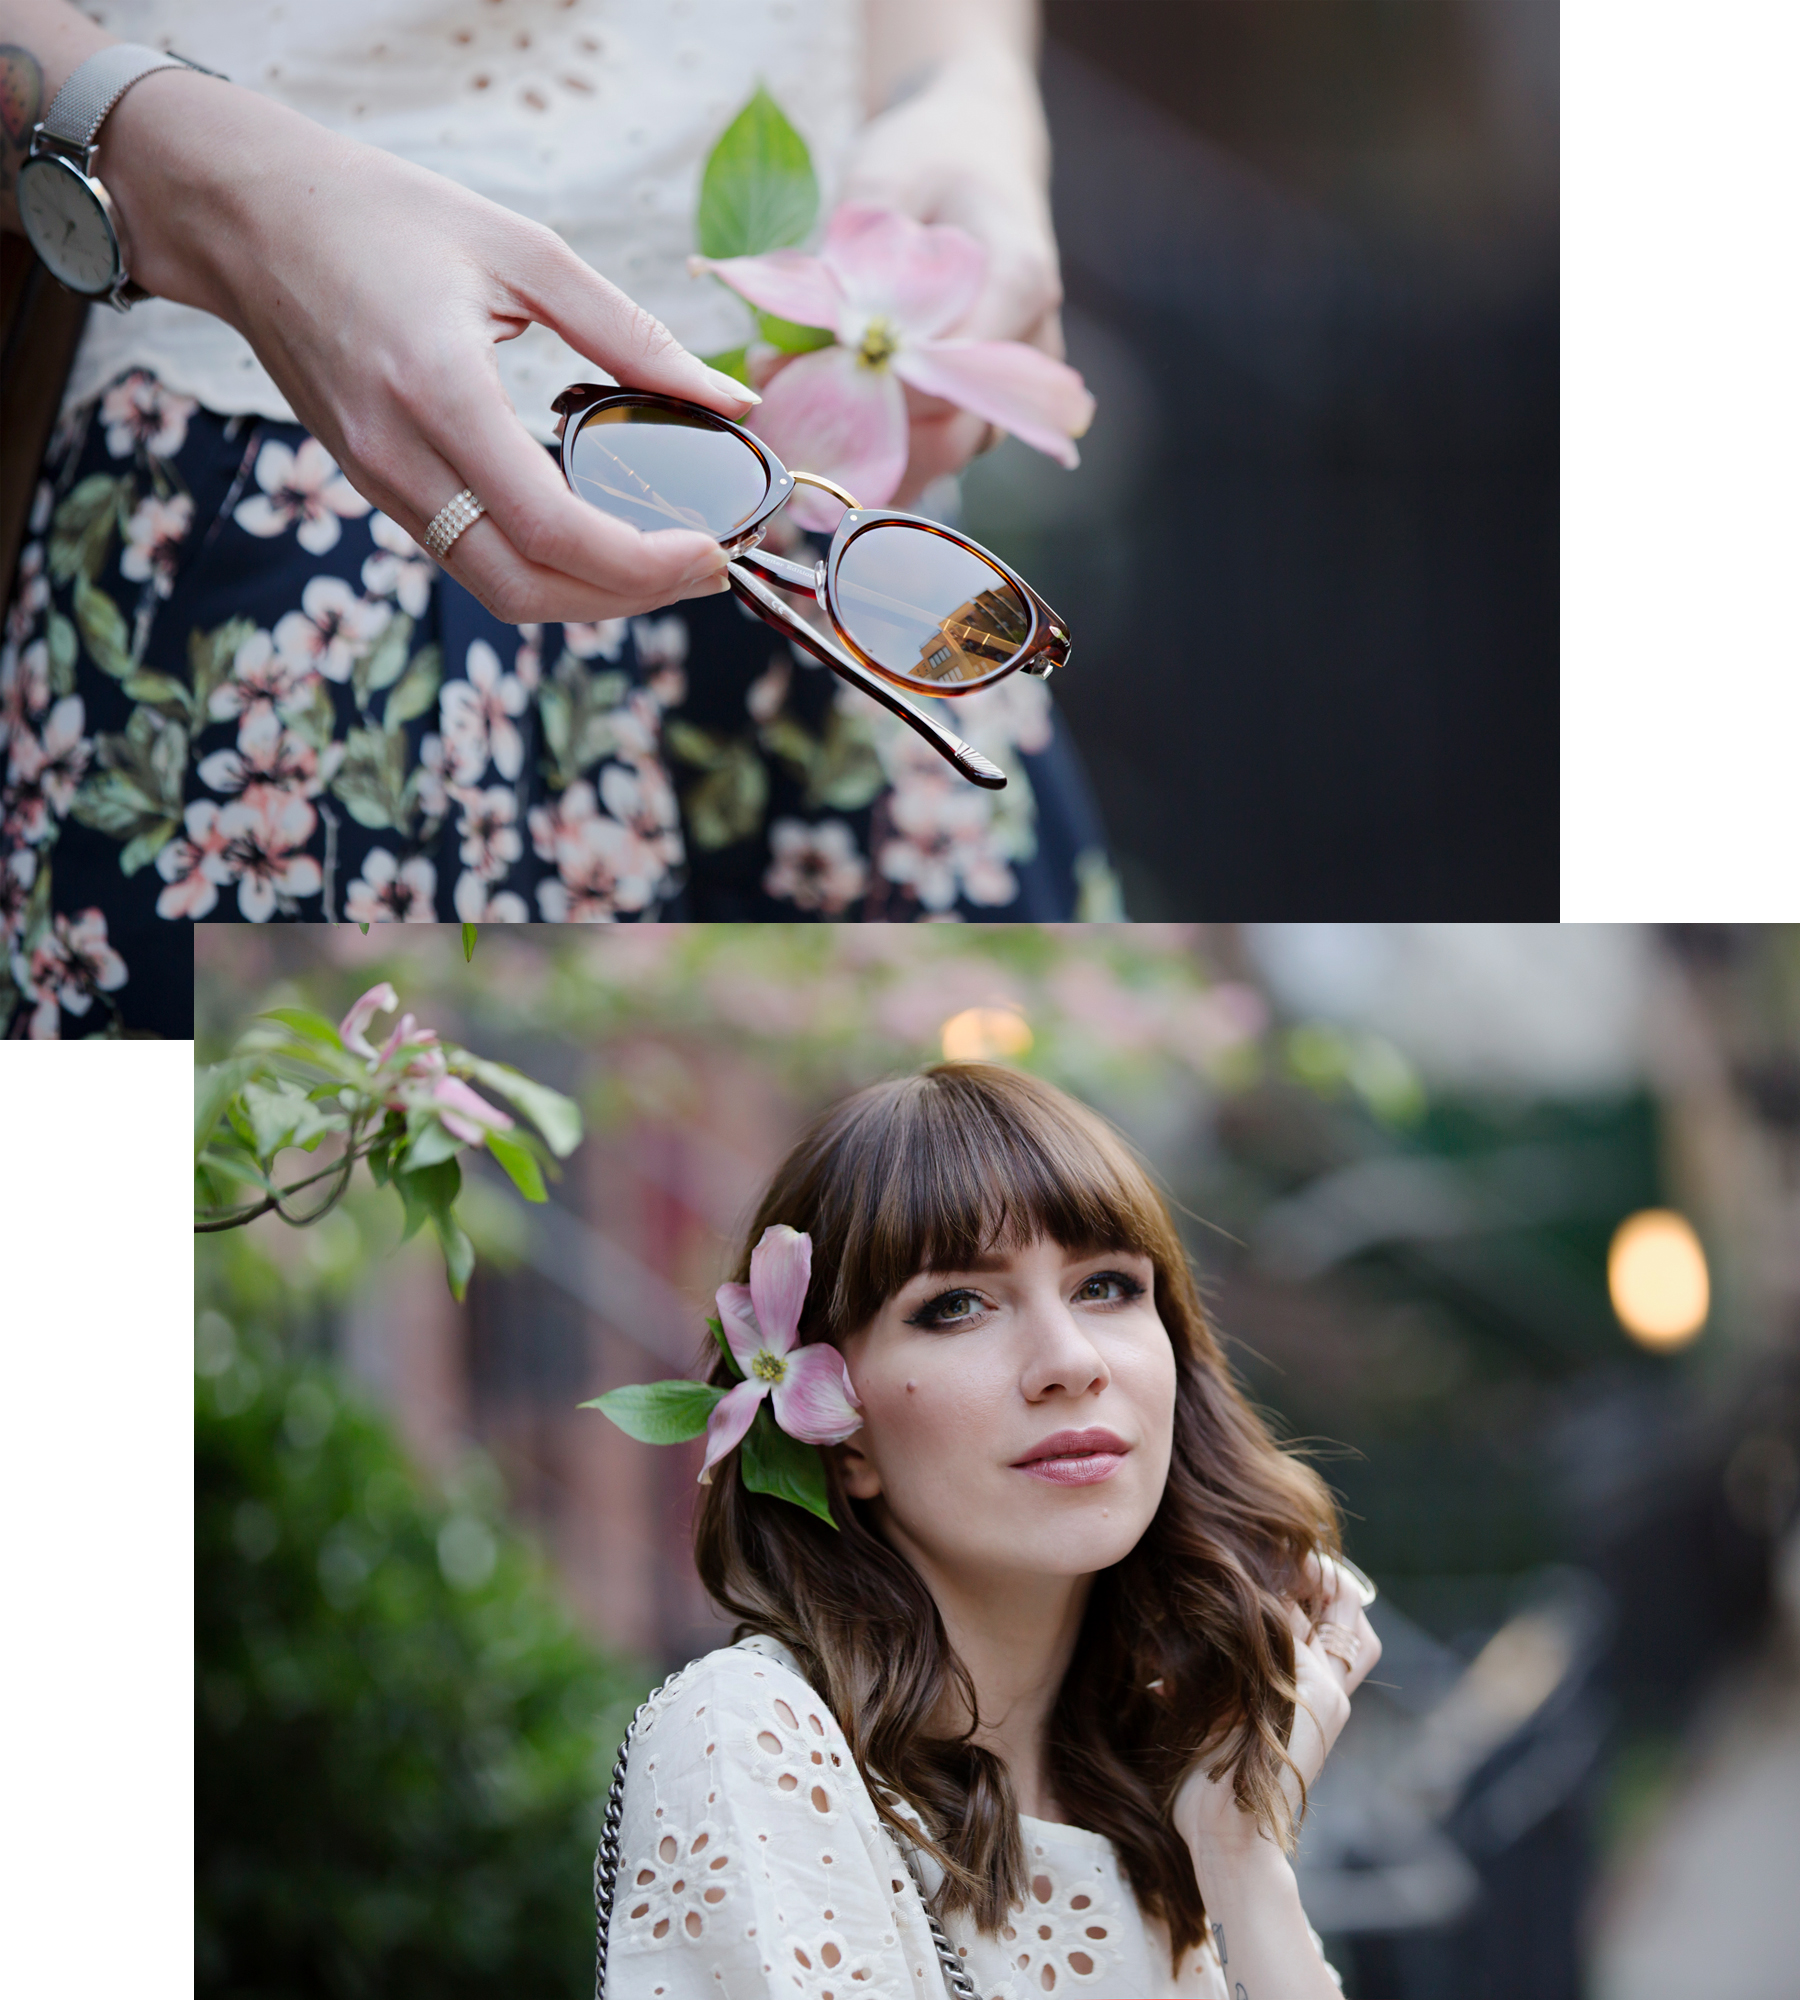 new york city streetstyle fashion fashionblogger mint&berry persol mister spex gucci dionysus luxury fashion styling look summer flowers floral cats & dogs modeblog ricarda schernus fashionblogger germany 4